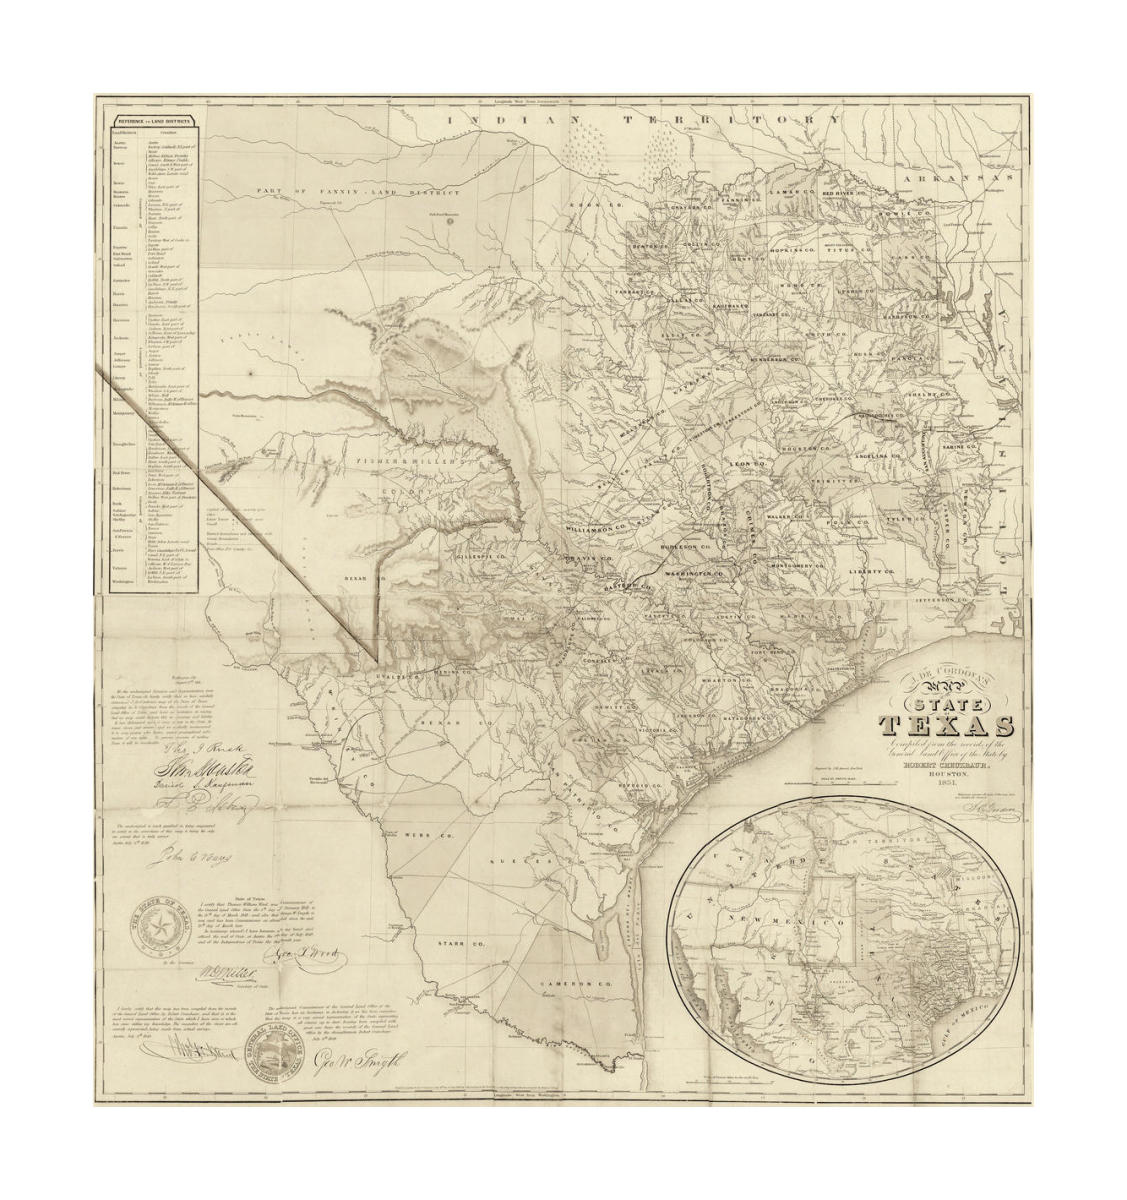 A Map Of The State Of Texas.Jacob De Cordova Map Of The State Of Texas Compiled From The Records Of The General Land Office Of The State 1851